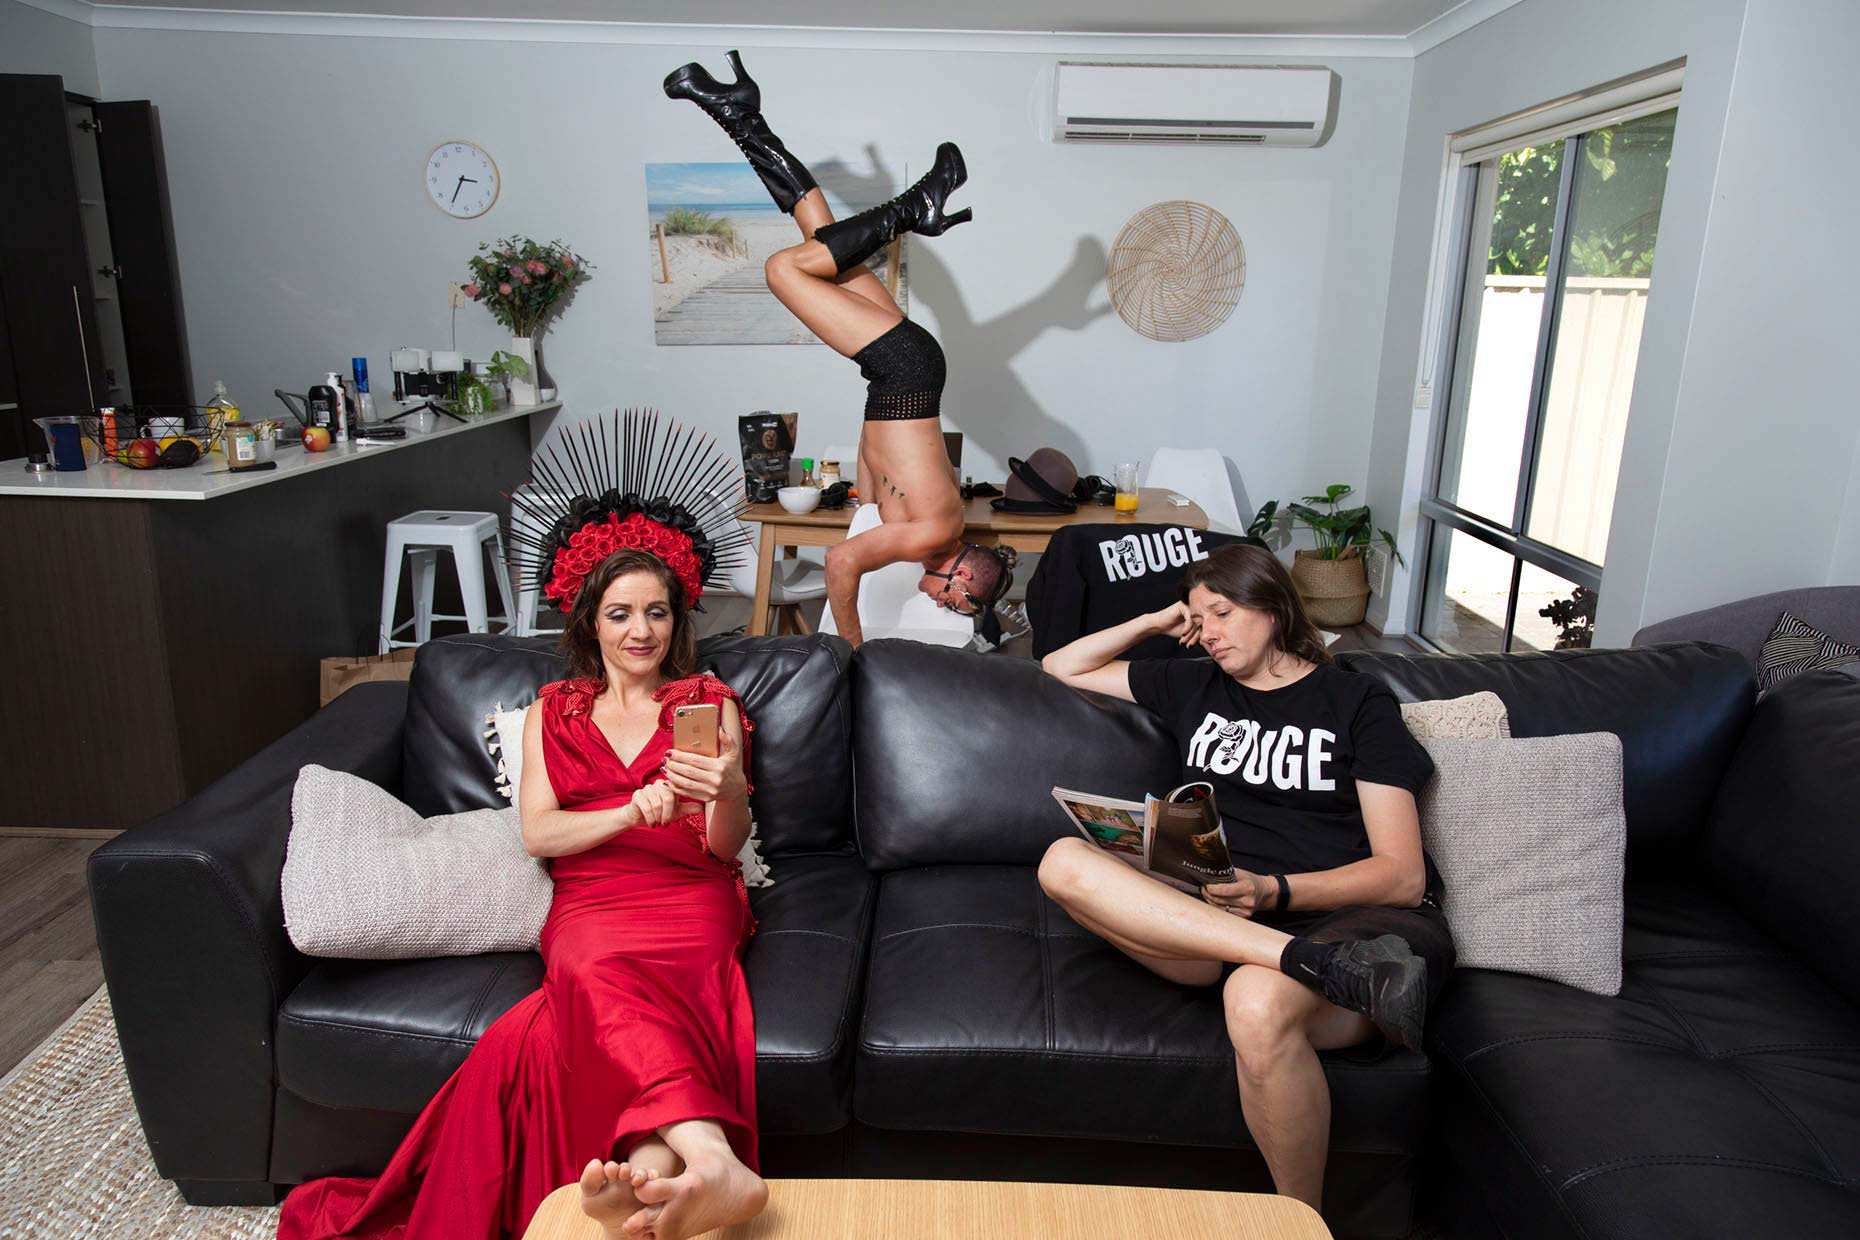 Rouge cabaret troupe at home during COVID lockdown